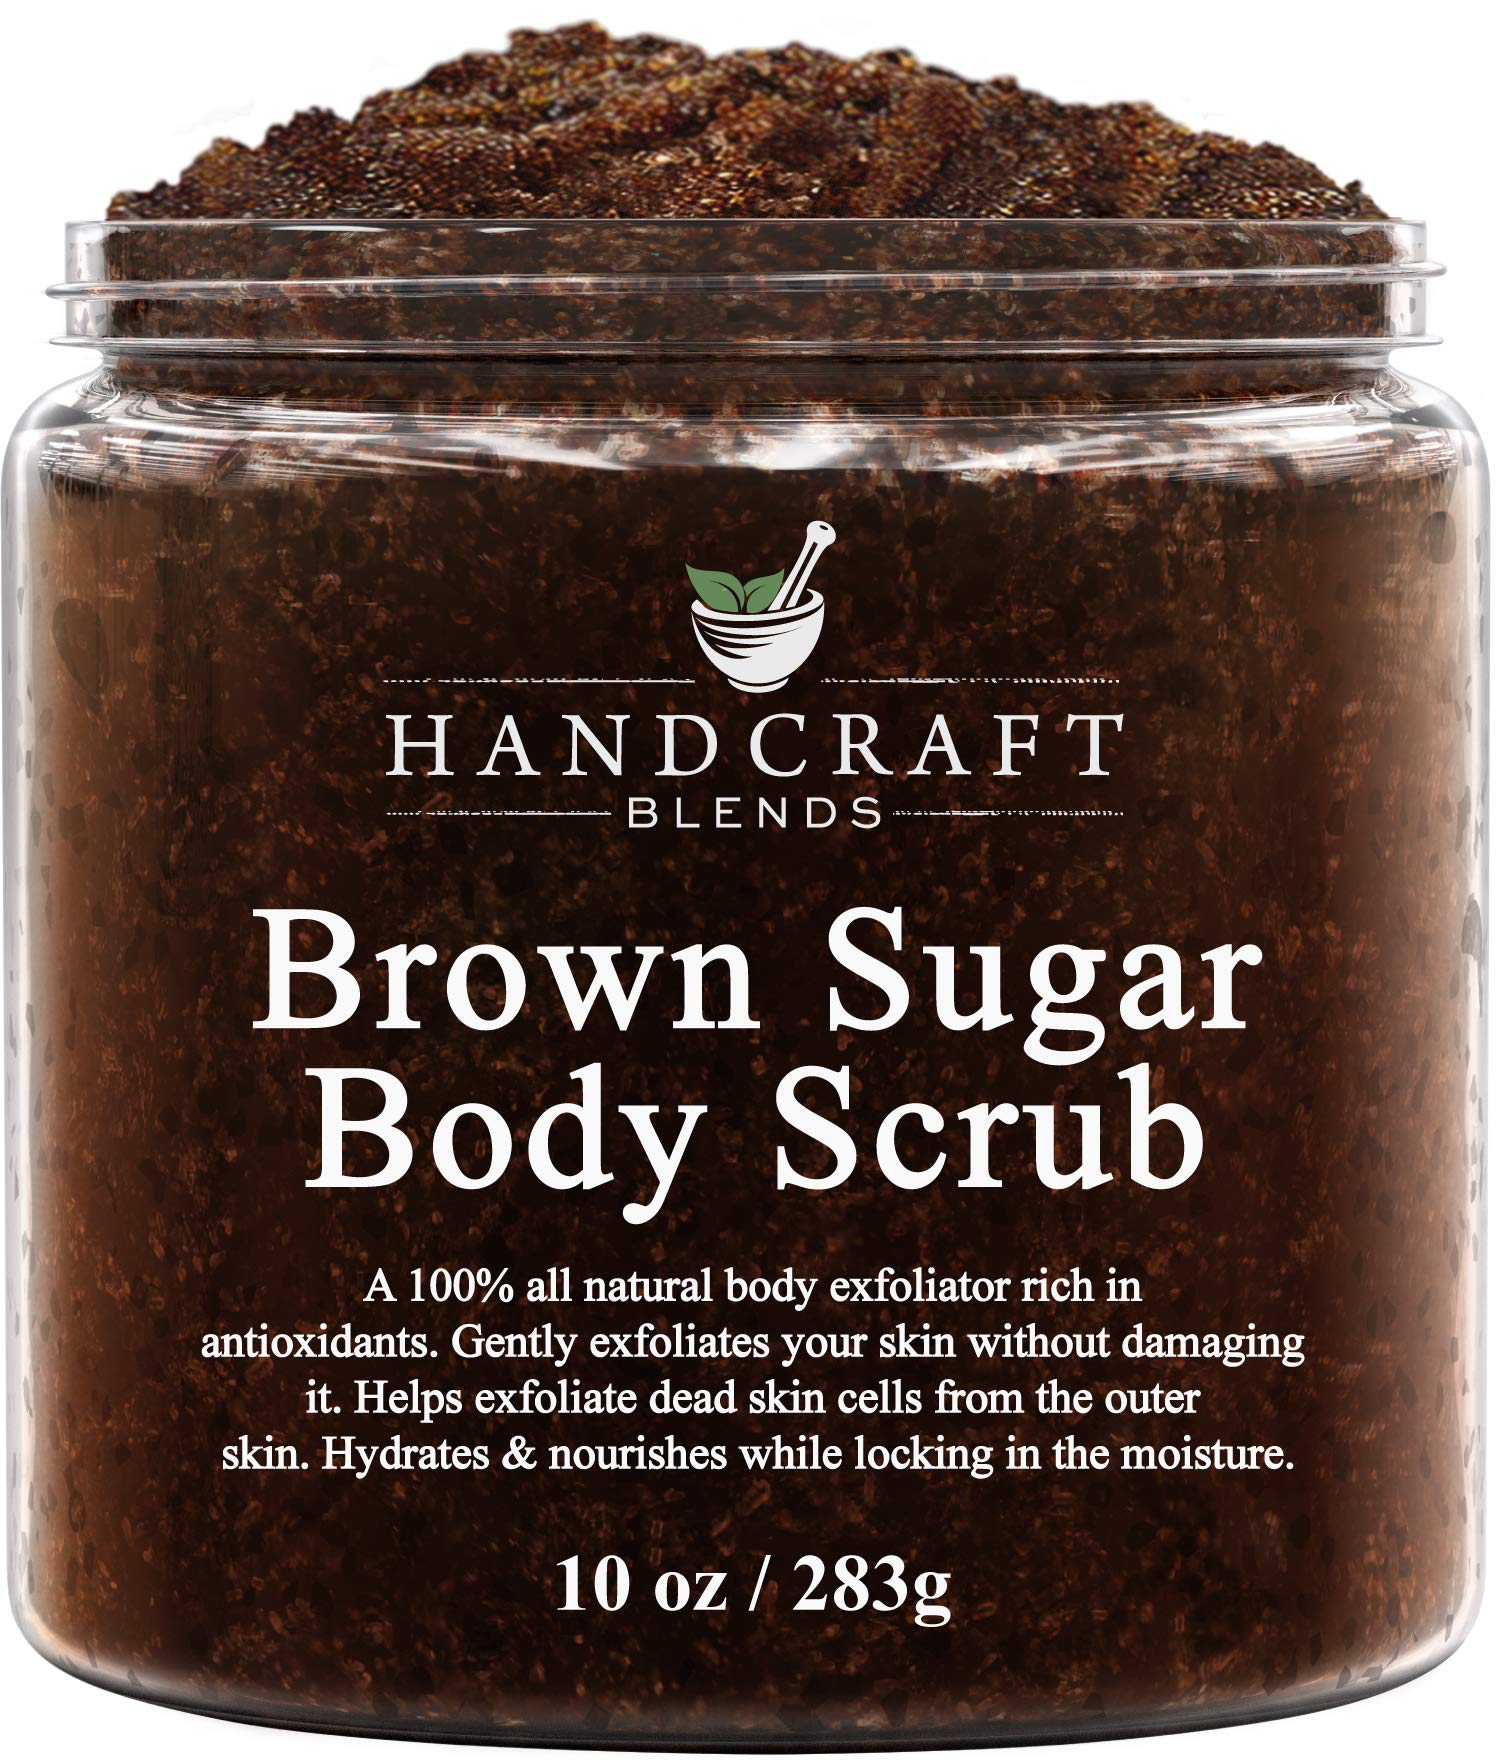 Handcraft Brown Sugar Body & Face Scrub - All Natural - Great as a Hand and Foot Scrub - for Cellulite, Stretch Marks, and Varicose Vein - 10 oz